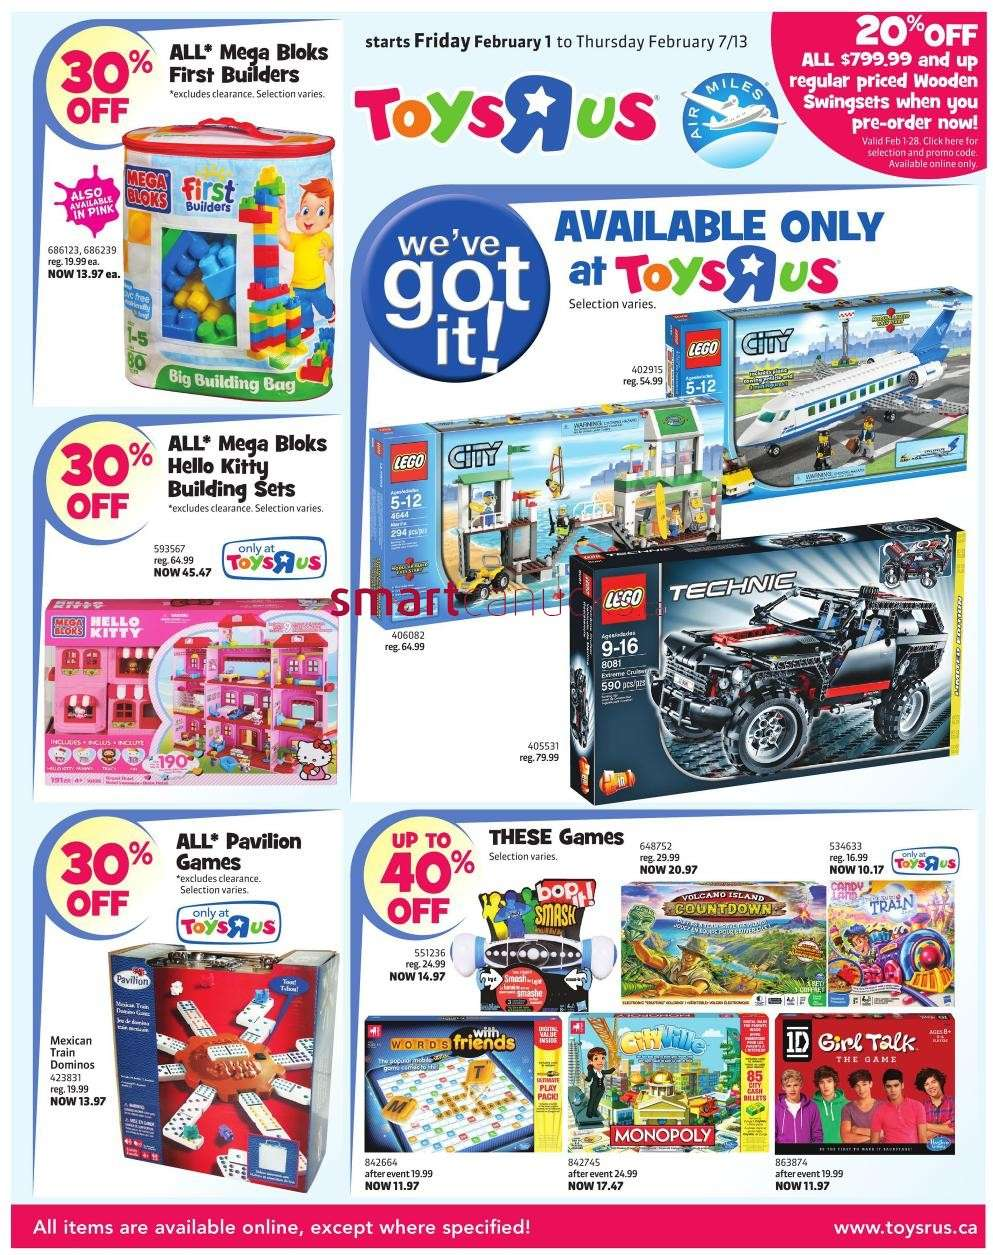 All Toys Toys R Us : Toys r us flyer feb to